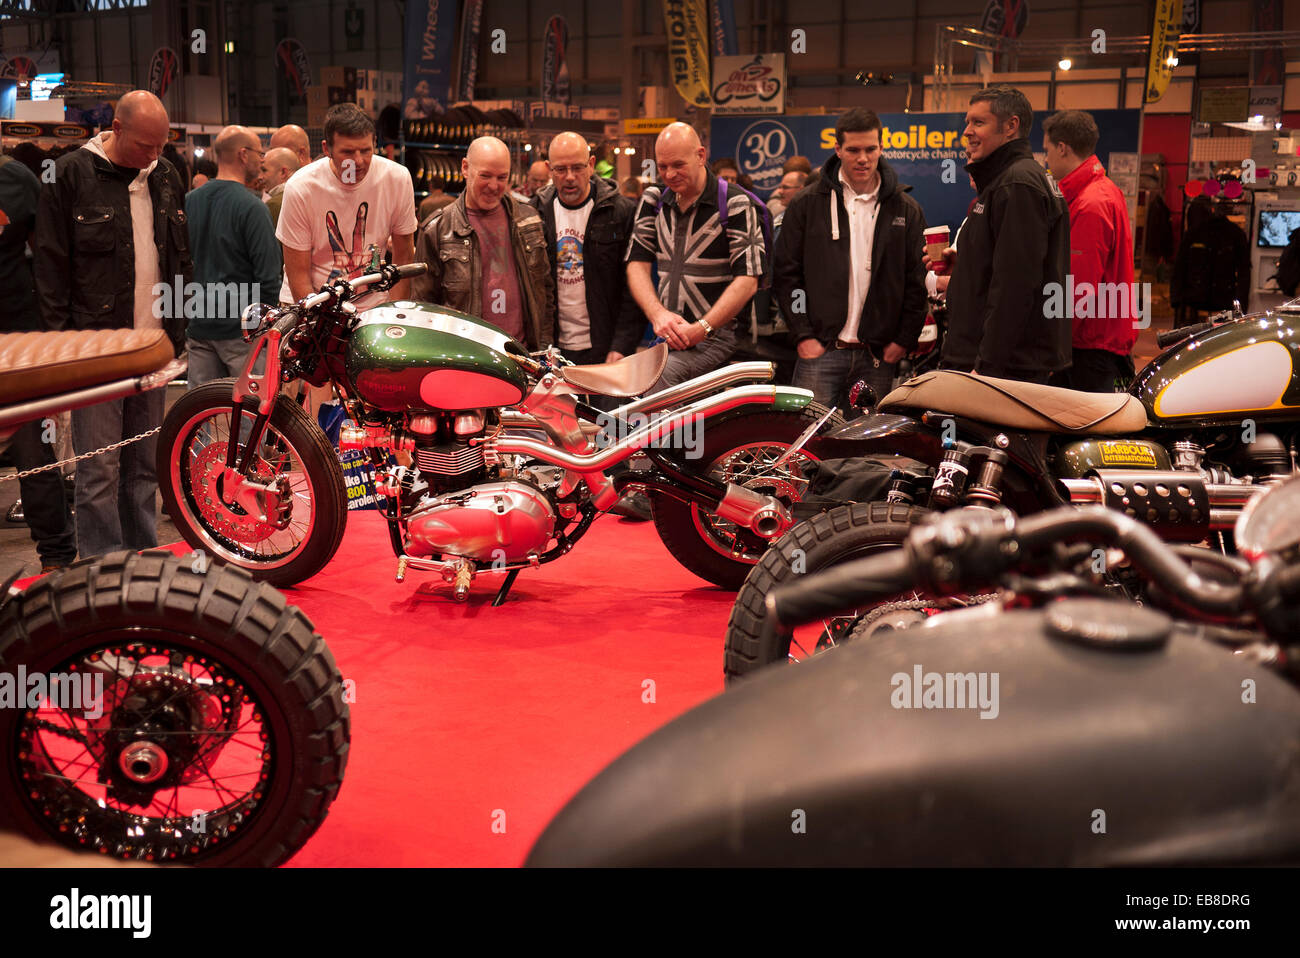 Visitors to the Motorcycle Live show at Birmingham's NEC, take a look at an custom Triumph motorcycle. - Stock Image